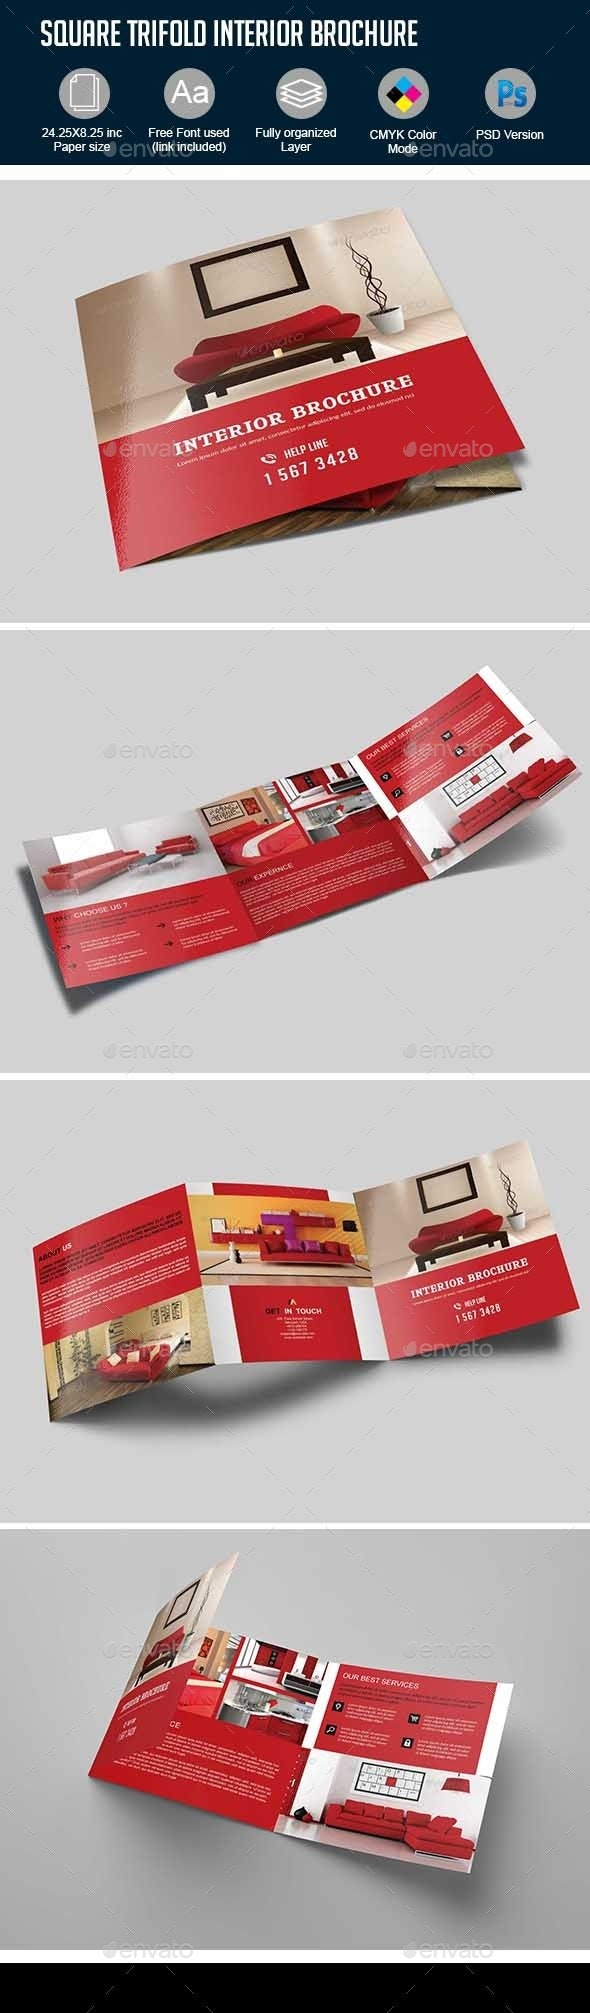 Squire Trifold Interior Brochure - Corporate Brochures